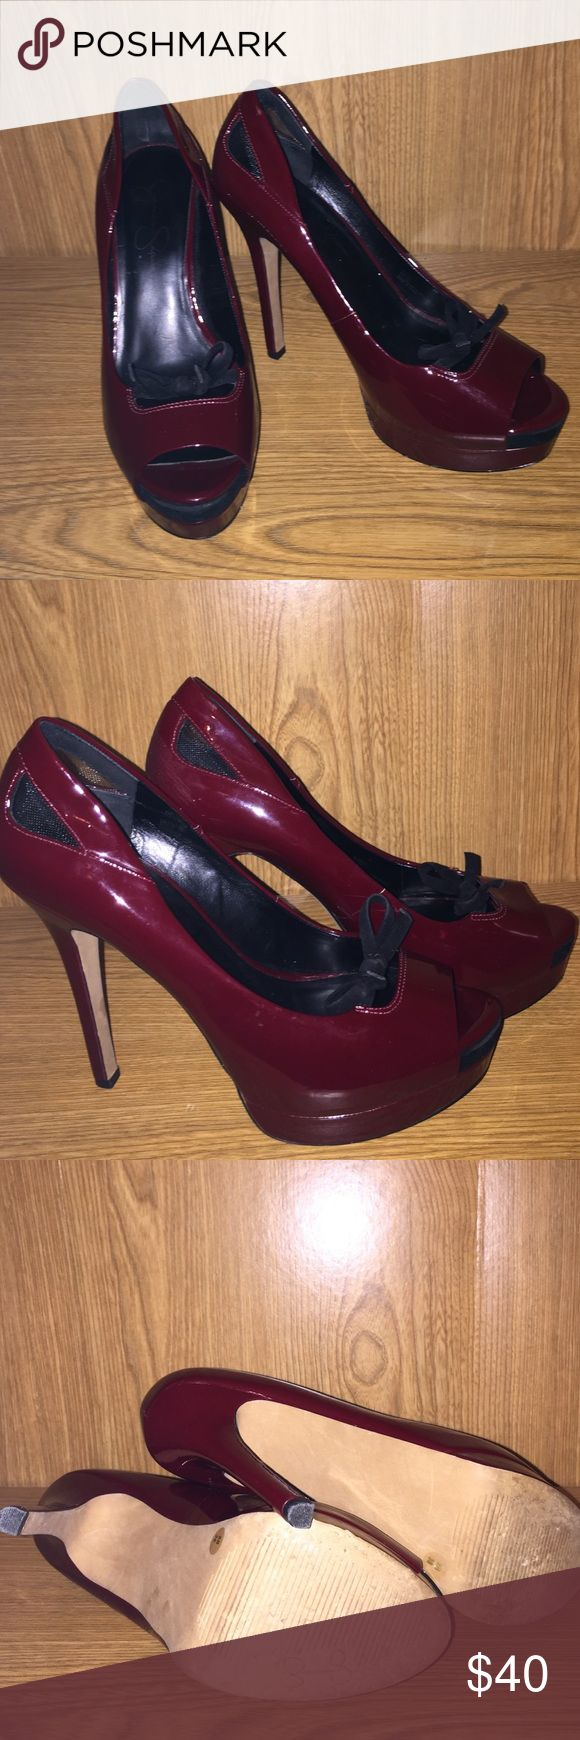 💥TONIGHT ONLY💥 SEXY Jessica Simpson heels! Great condition Jessica Simpson deep red heels with black bows! Jessica Simpson Shoes Heels